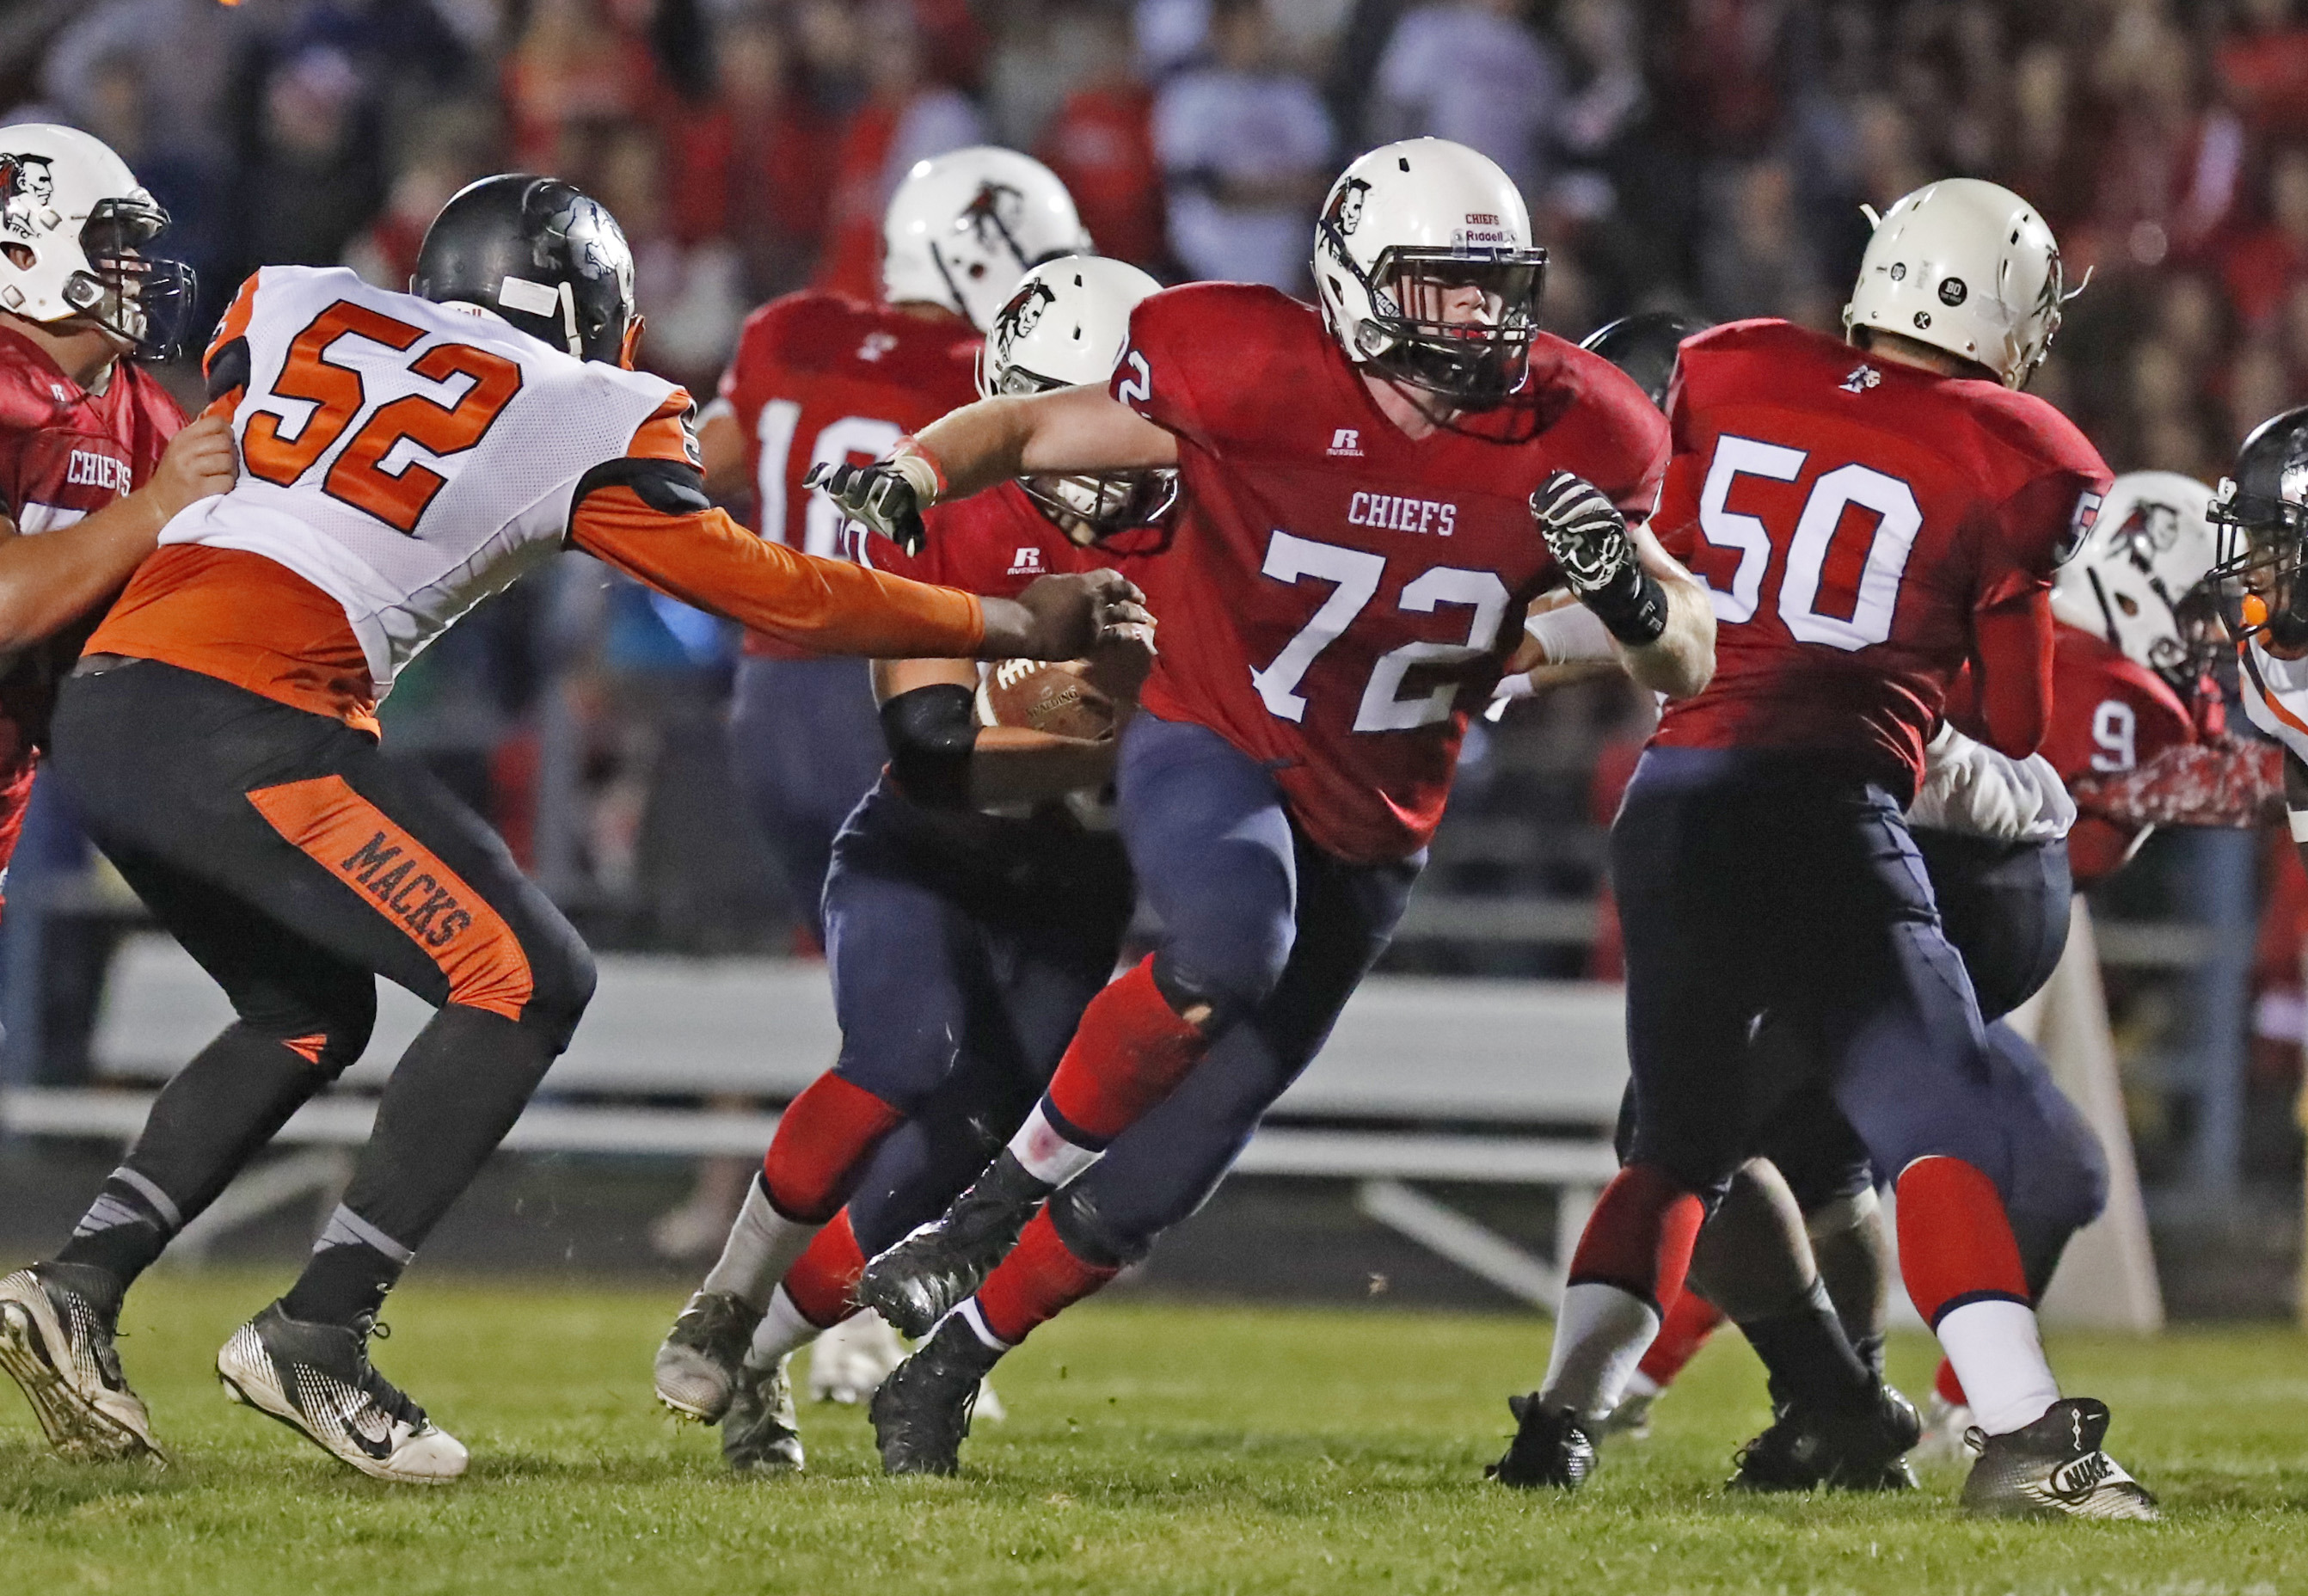 Iroquois Nathan Emer blocks against McKinley this season. (Harry Scull Jr./Buffalo News)